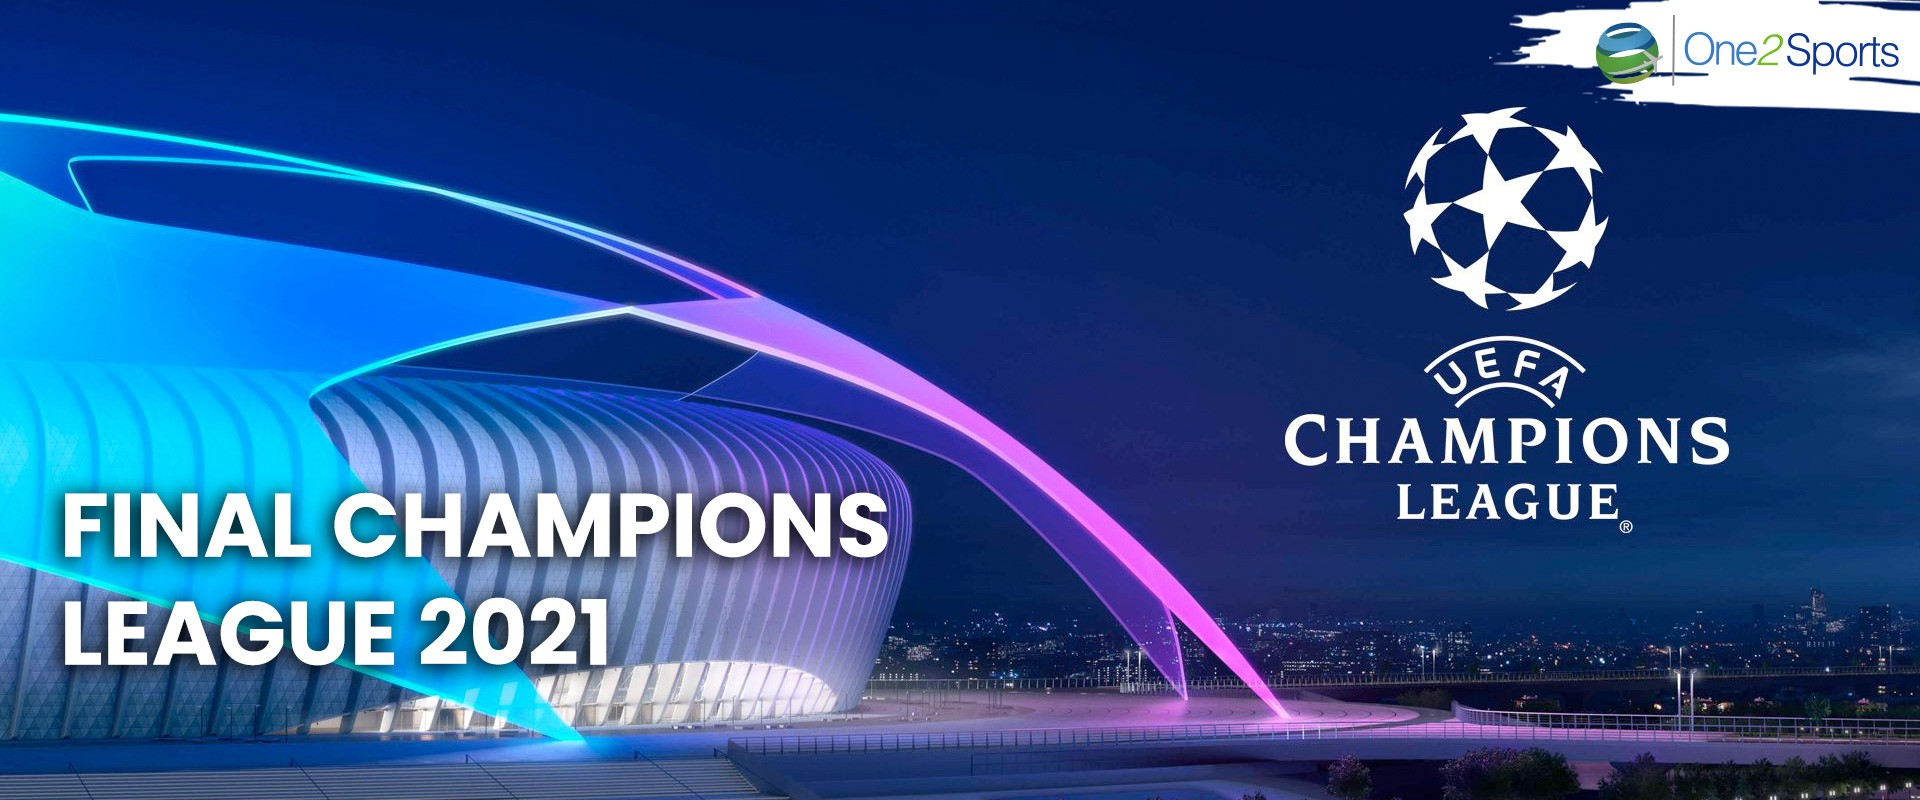 Final Champions League 2021 - 3 noches